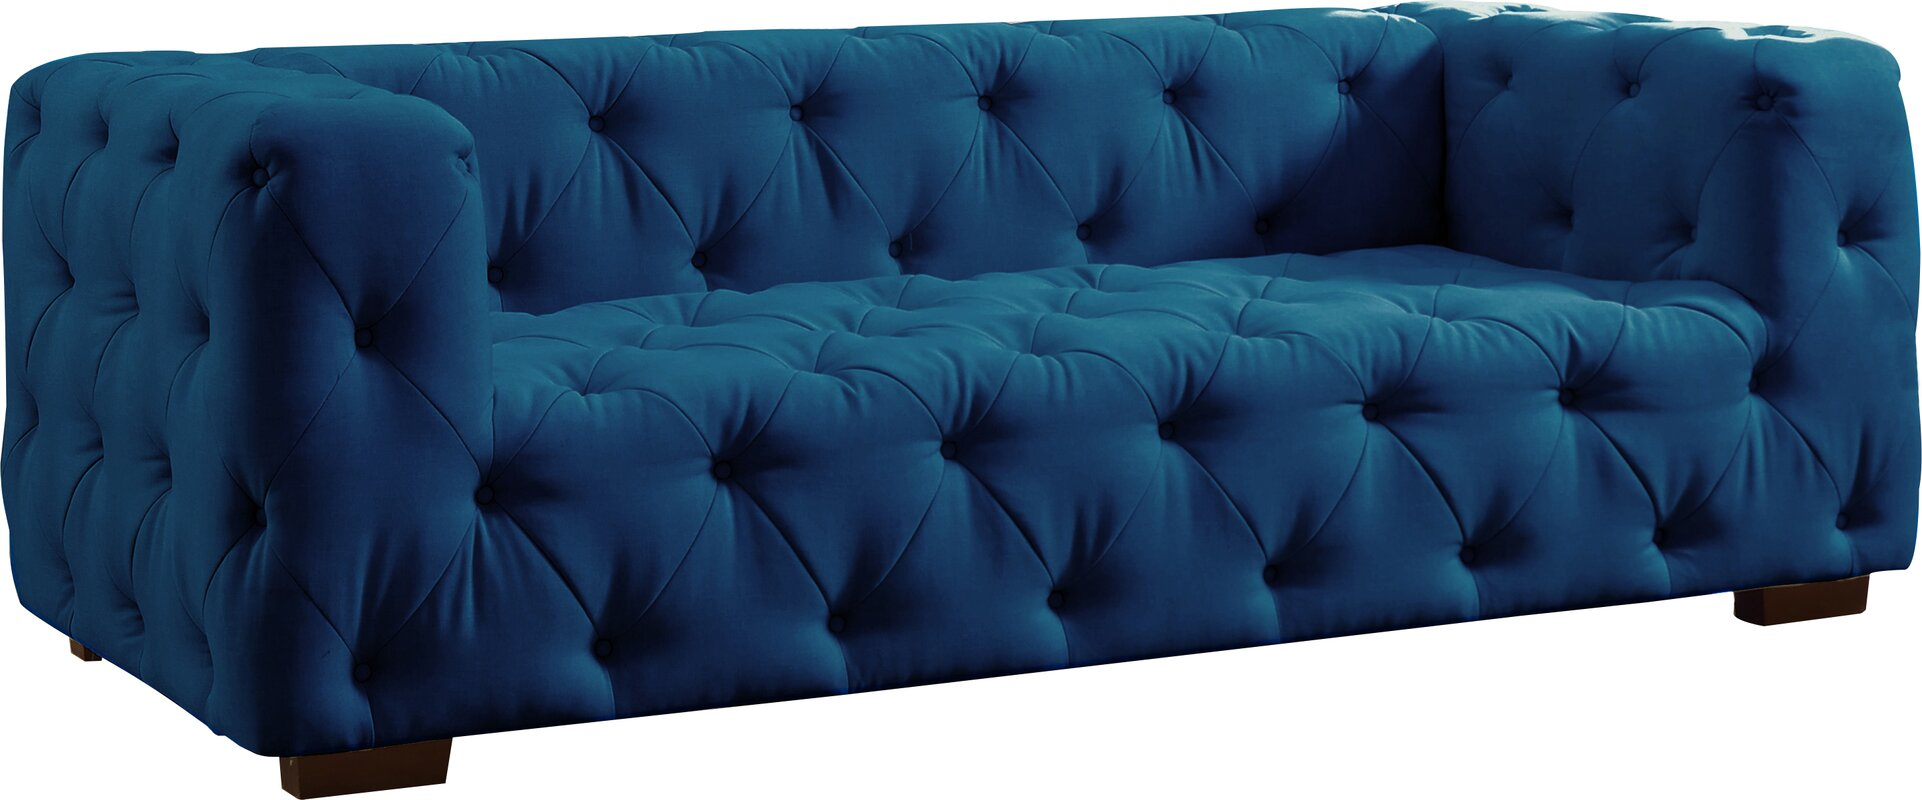 Teal Chesterfield Sofa abadie tufted large chesterfield sofa reviews joss